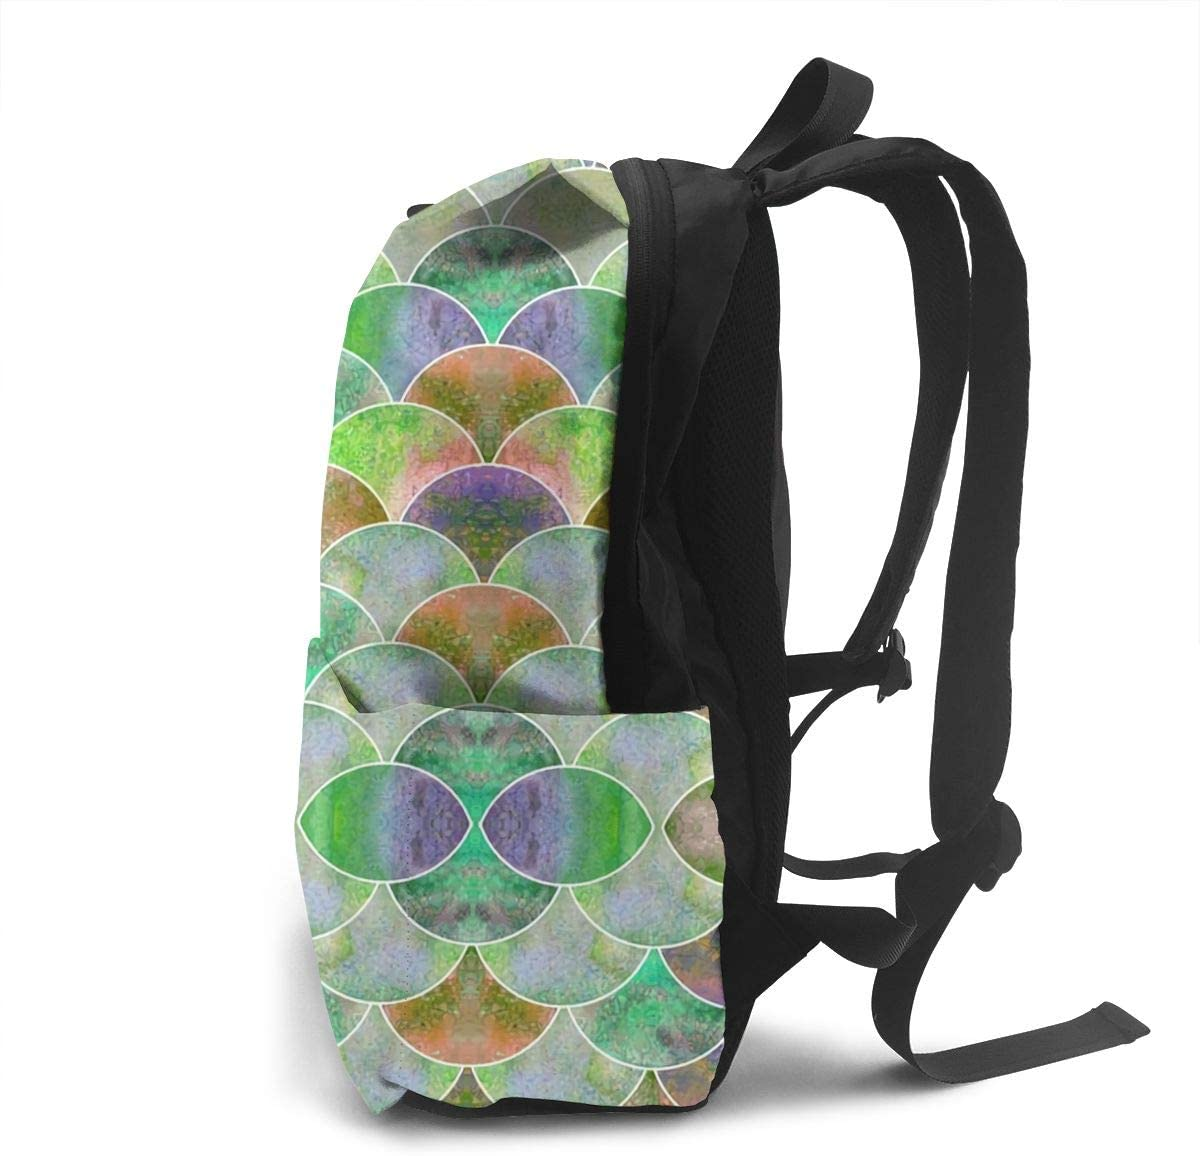 Fish Scale Ocean Texture,Unisex Adult Unique Backpack,School Casual Sports Book Bags,Multi-function travel storage backpack for daily work or school,Lightweight Travel Daypacks